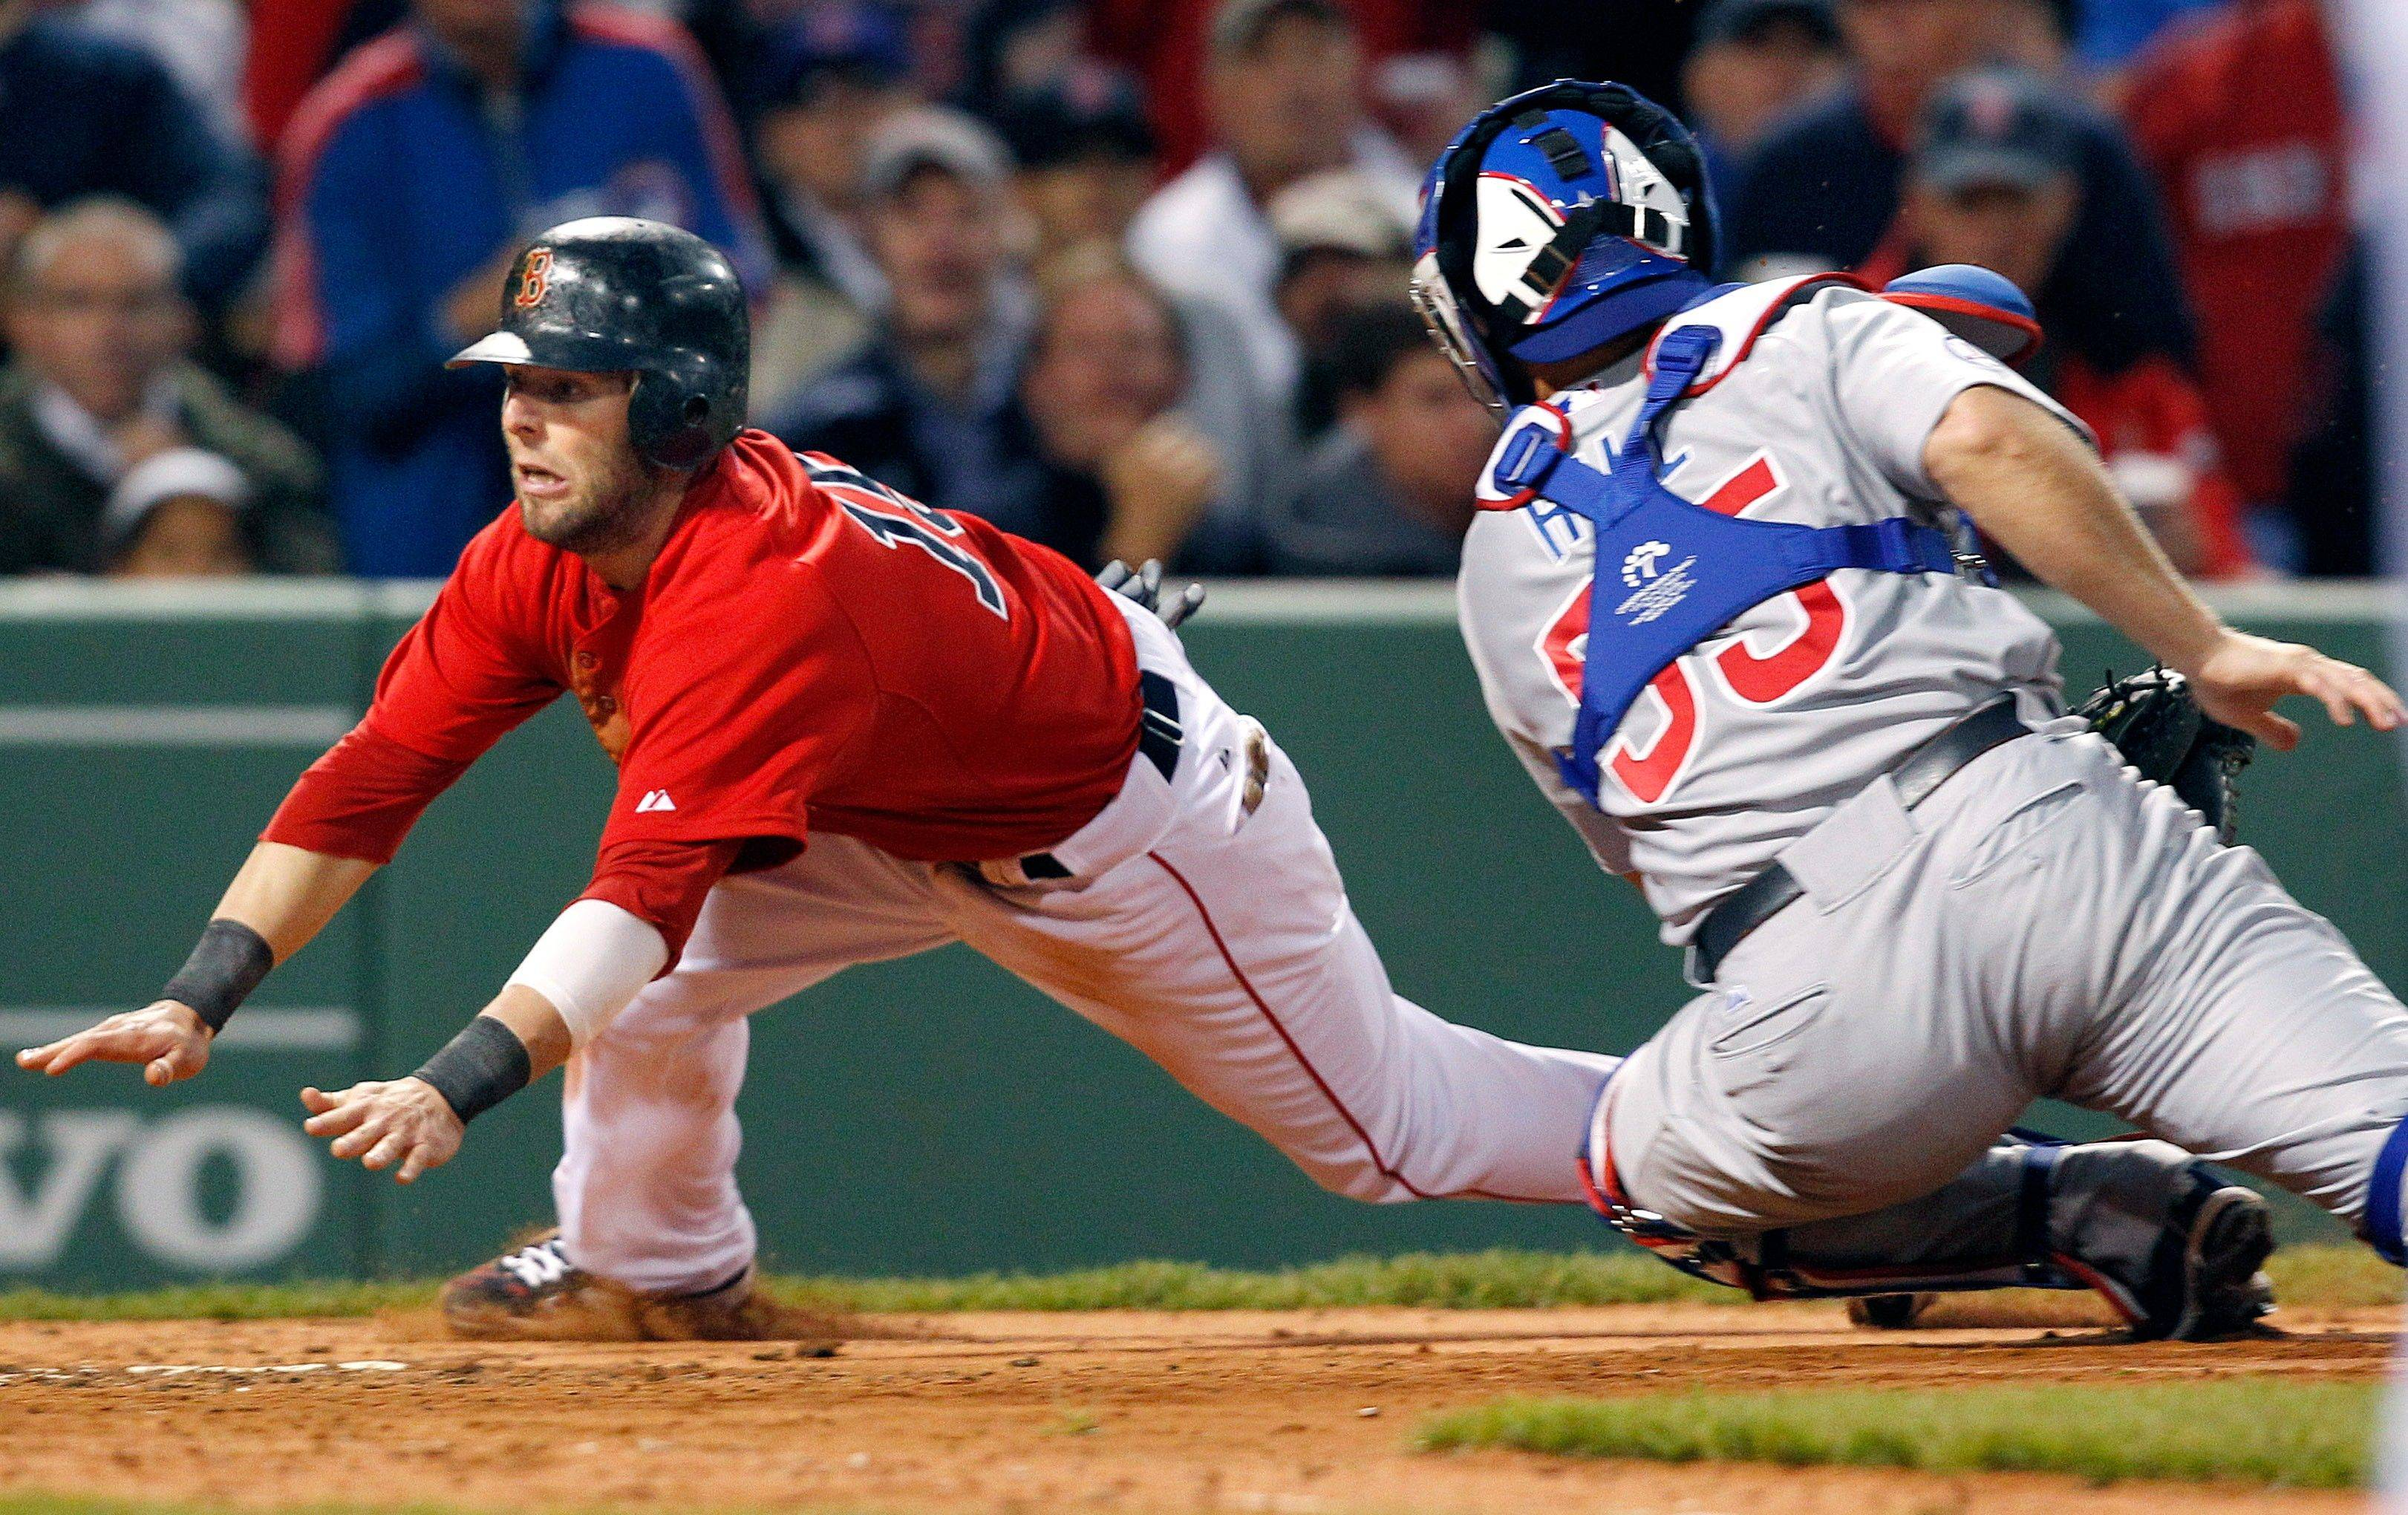 Boston Red Sox second baseman Dustin Pedroia slides safely into home on Kevin Youkilis' sacrifice fly as Chicago Cubs catcher Koyie Hill (55) cannot make the tag in the third inning of an interleague baseball game at Fenway Park in Boston Friday, May 20, 2011.